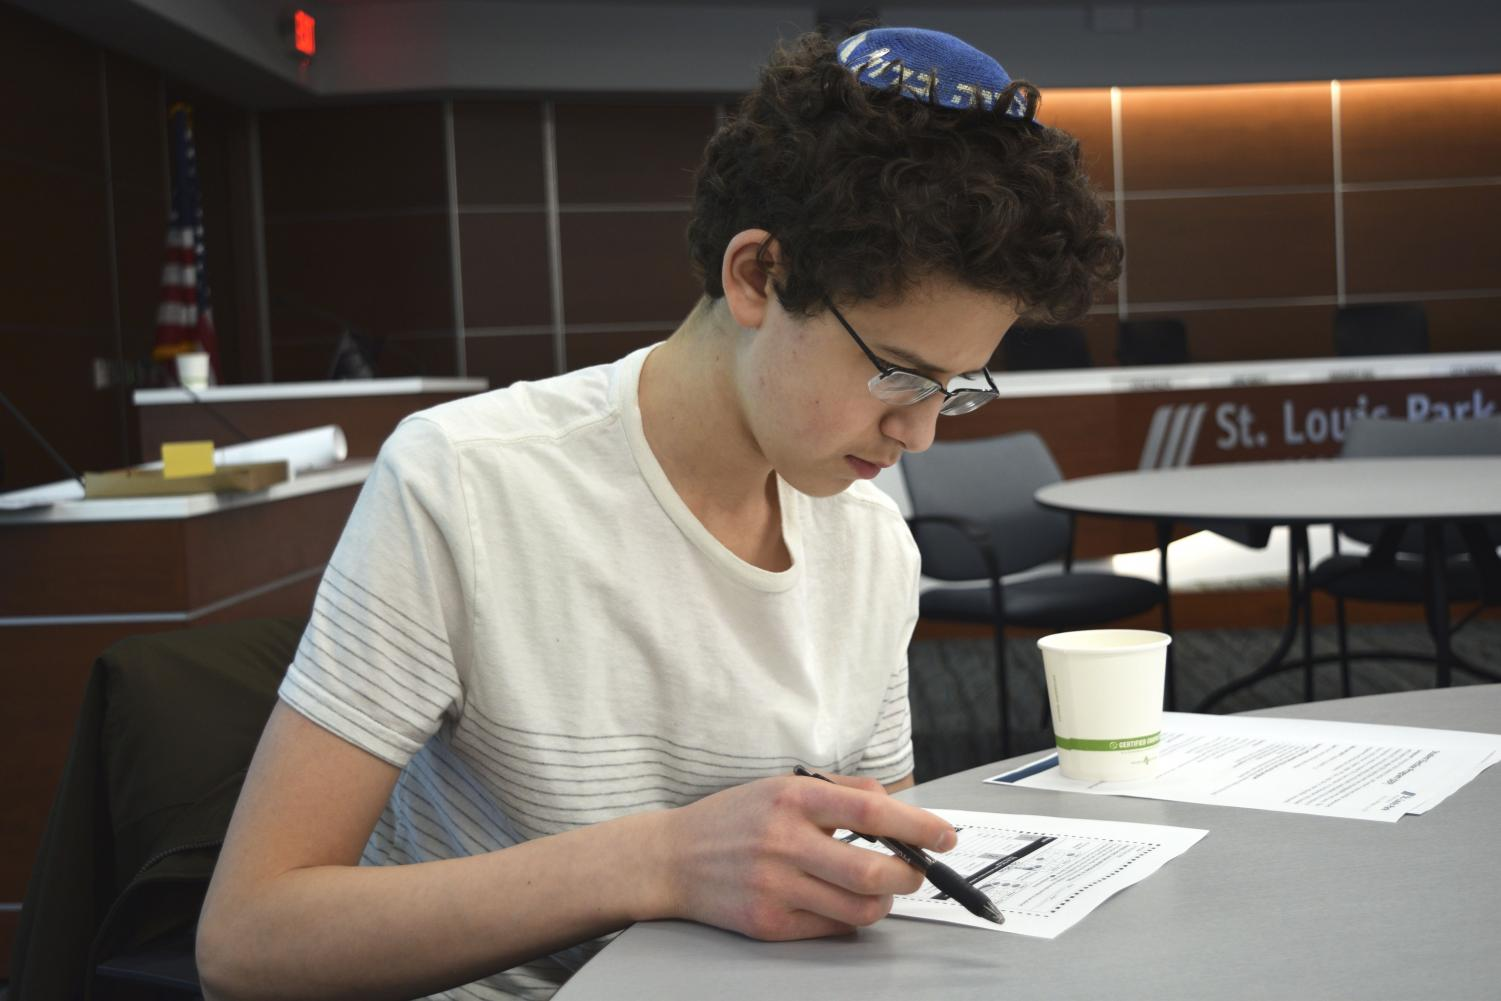 Junior Yoni Potter reviews sample ballots for the 2019 St. Louis Park municipal election which will utilize ranked-choice voting for the first time.